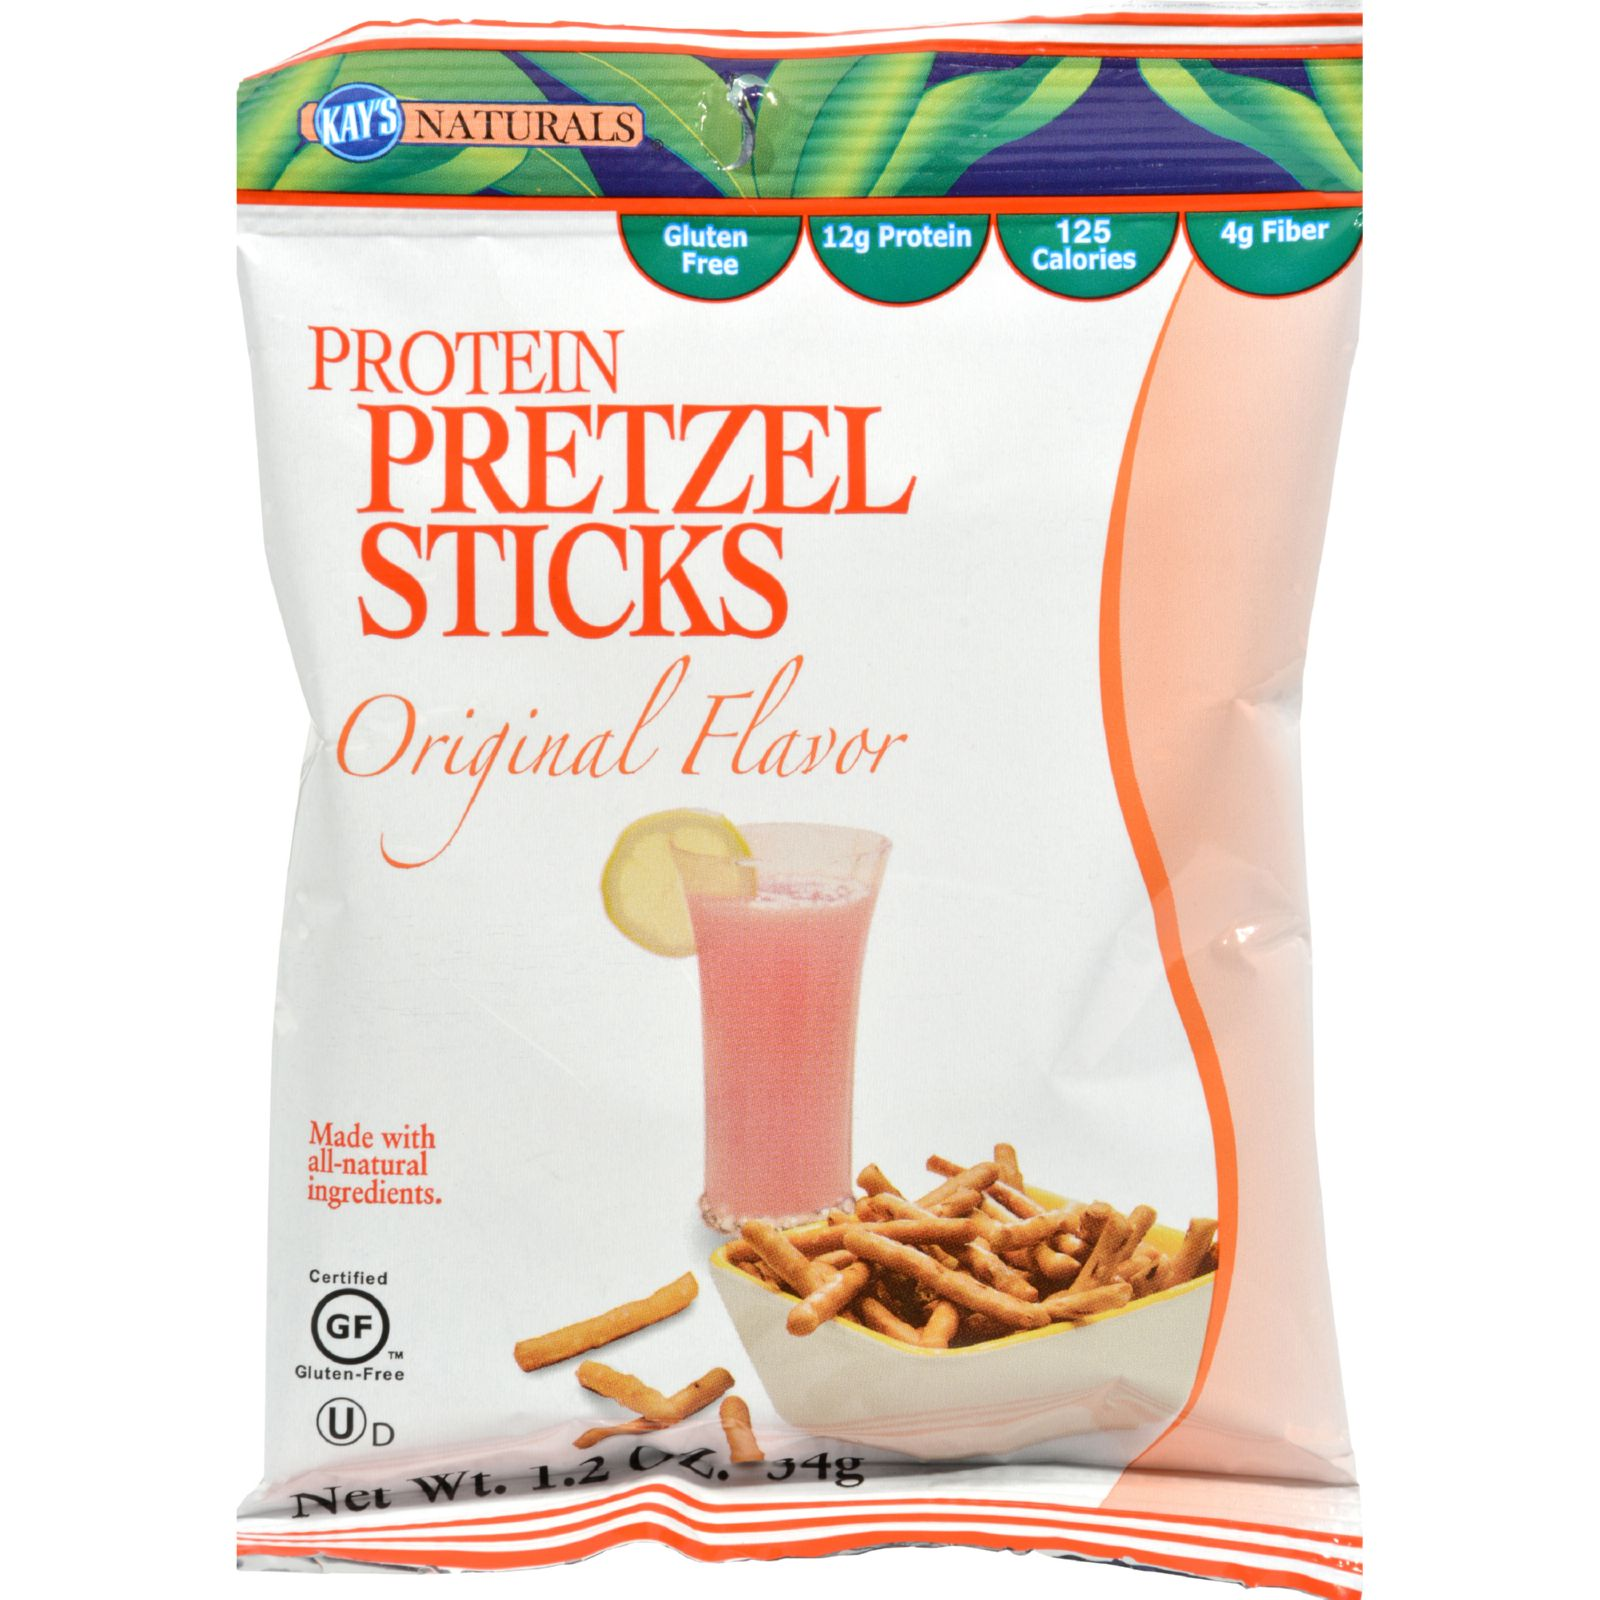 Kay's Naturals High Protein Pretzel Sticks, Original, 1.2 Oz